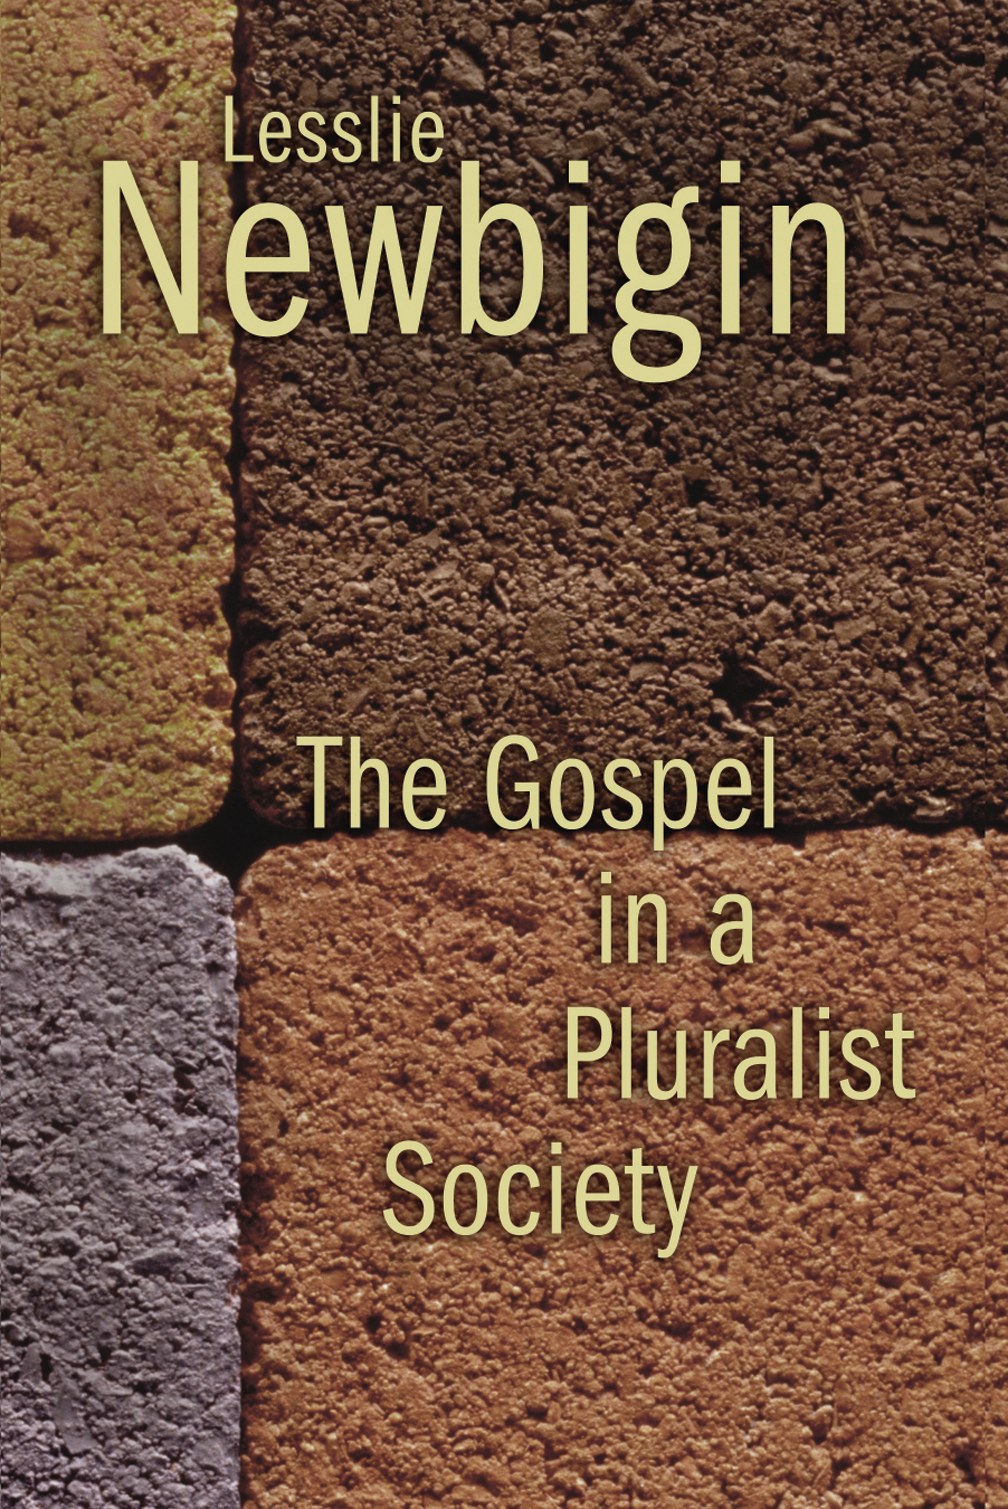 the gospel in a pluralistic society thesis Cronshaw, darren j and taylor, steve (2014) the congregation in a pluralist society: rereading newbigin for missional churches today pacifica, 27 (2) pp 206-228.